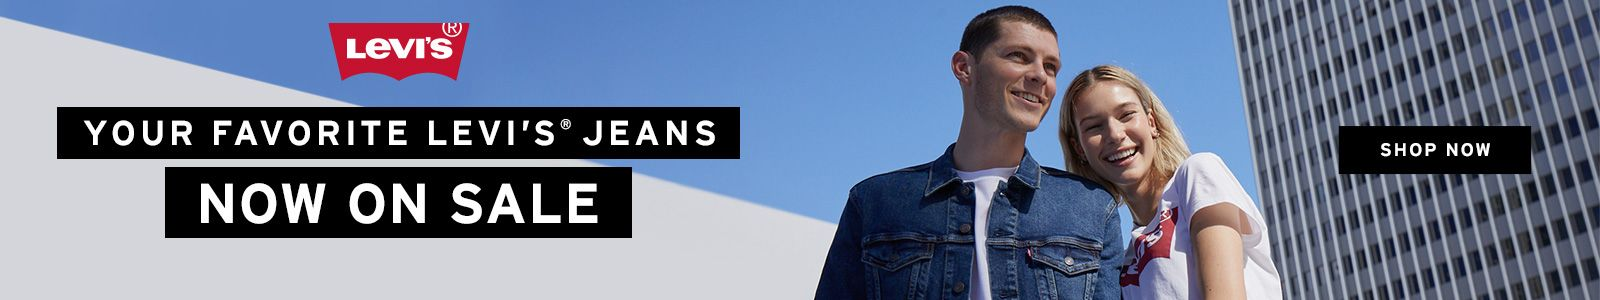 Your Favorite Levi's Jeans Now on Sale